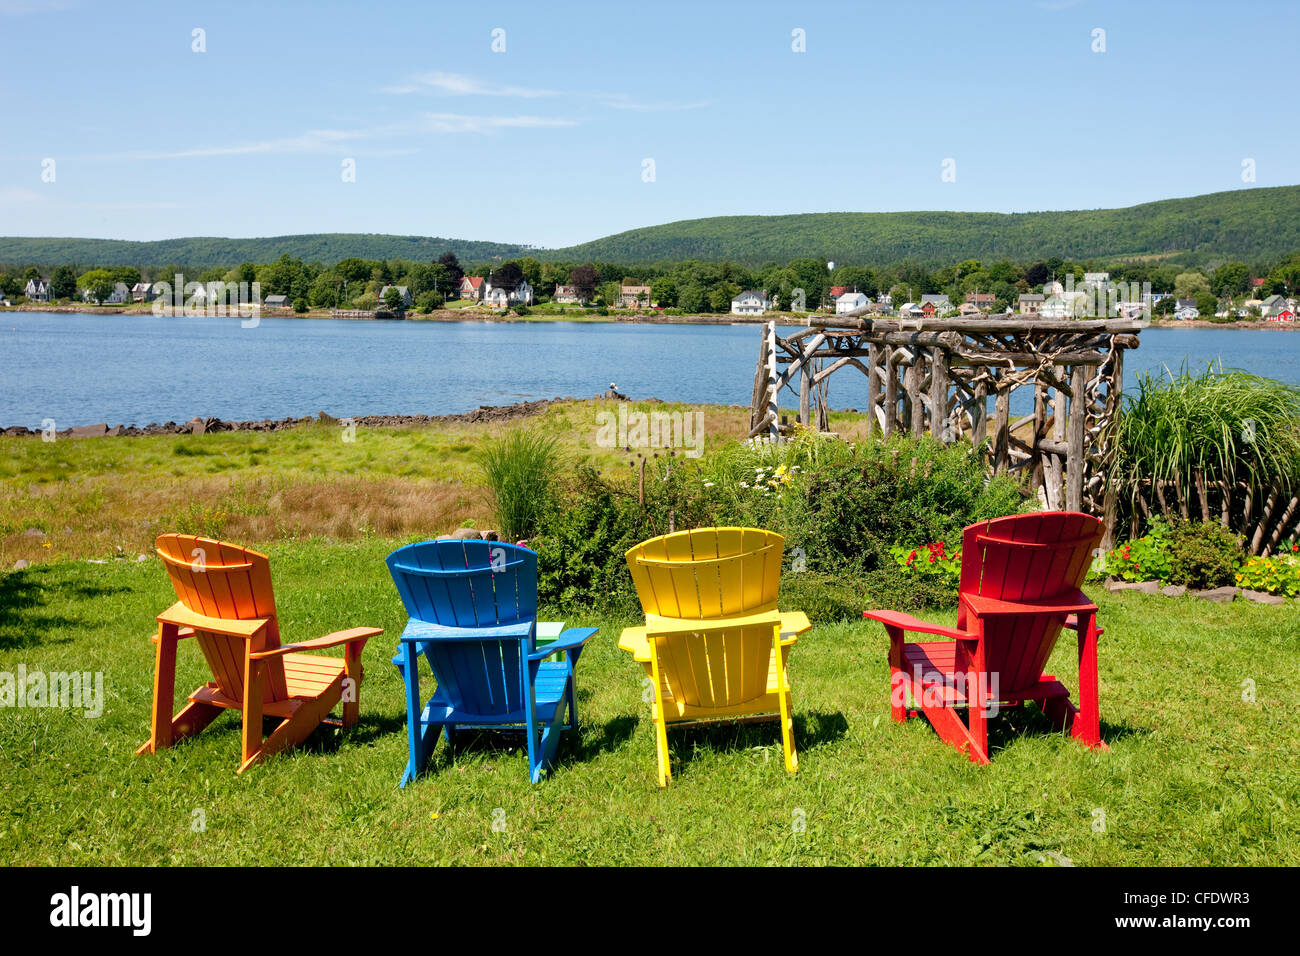 Colorfull Lawn Chairs, Annapolis Royal, Nova Scotia, Canada   Stock Image